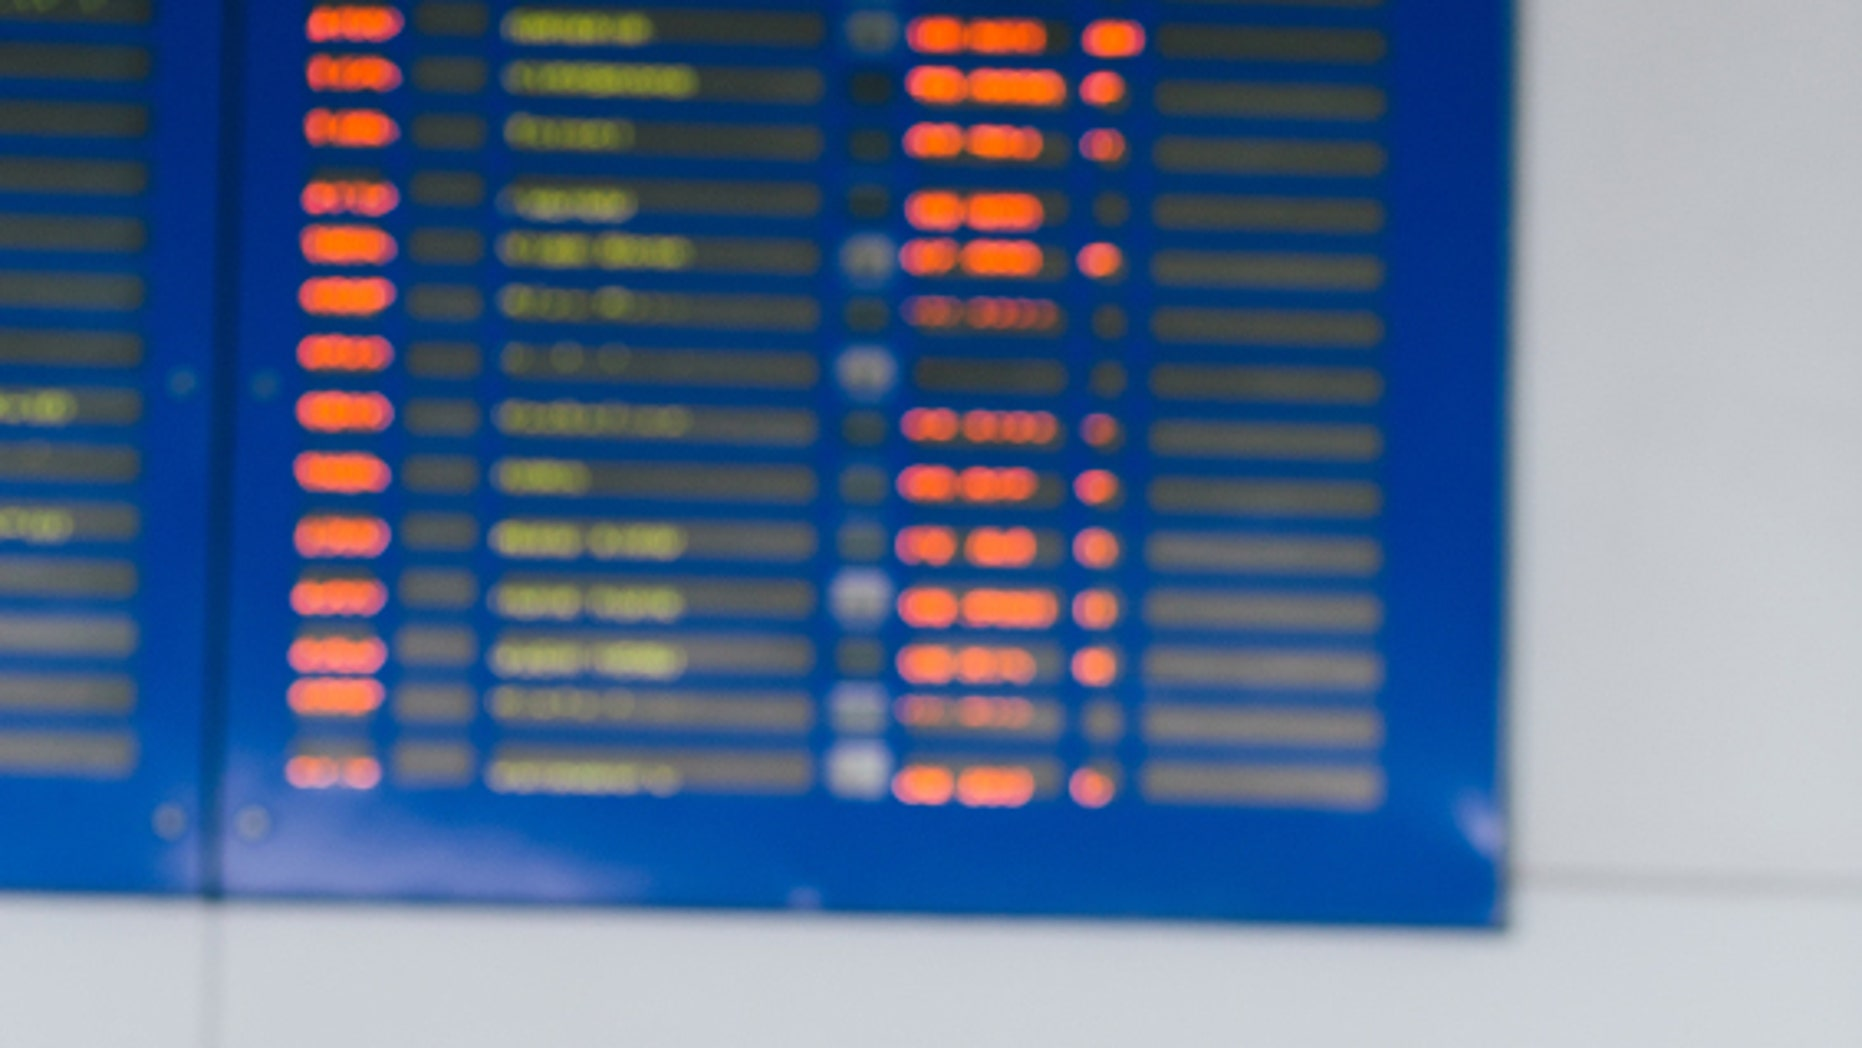 Learn how to get past that airport internet access paywall.